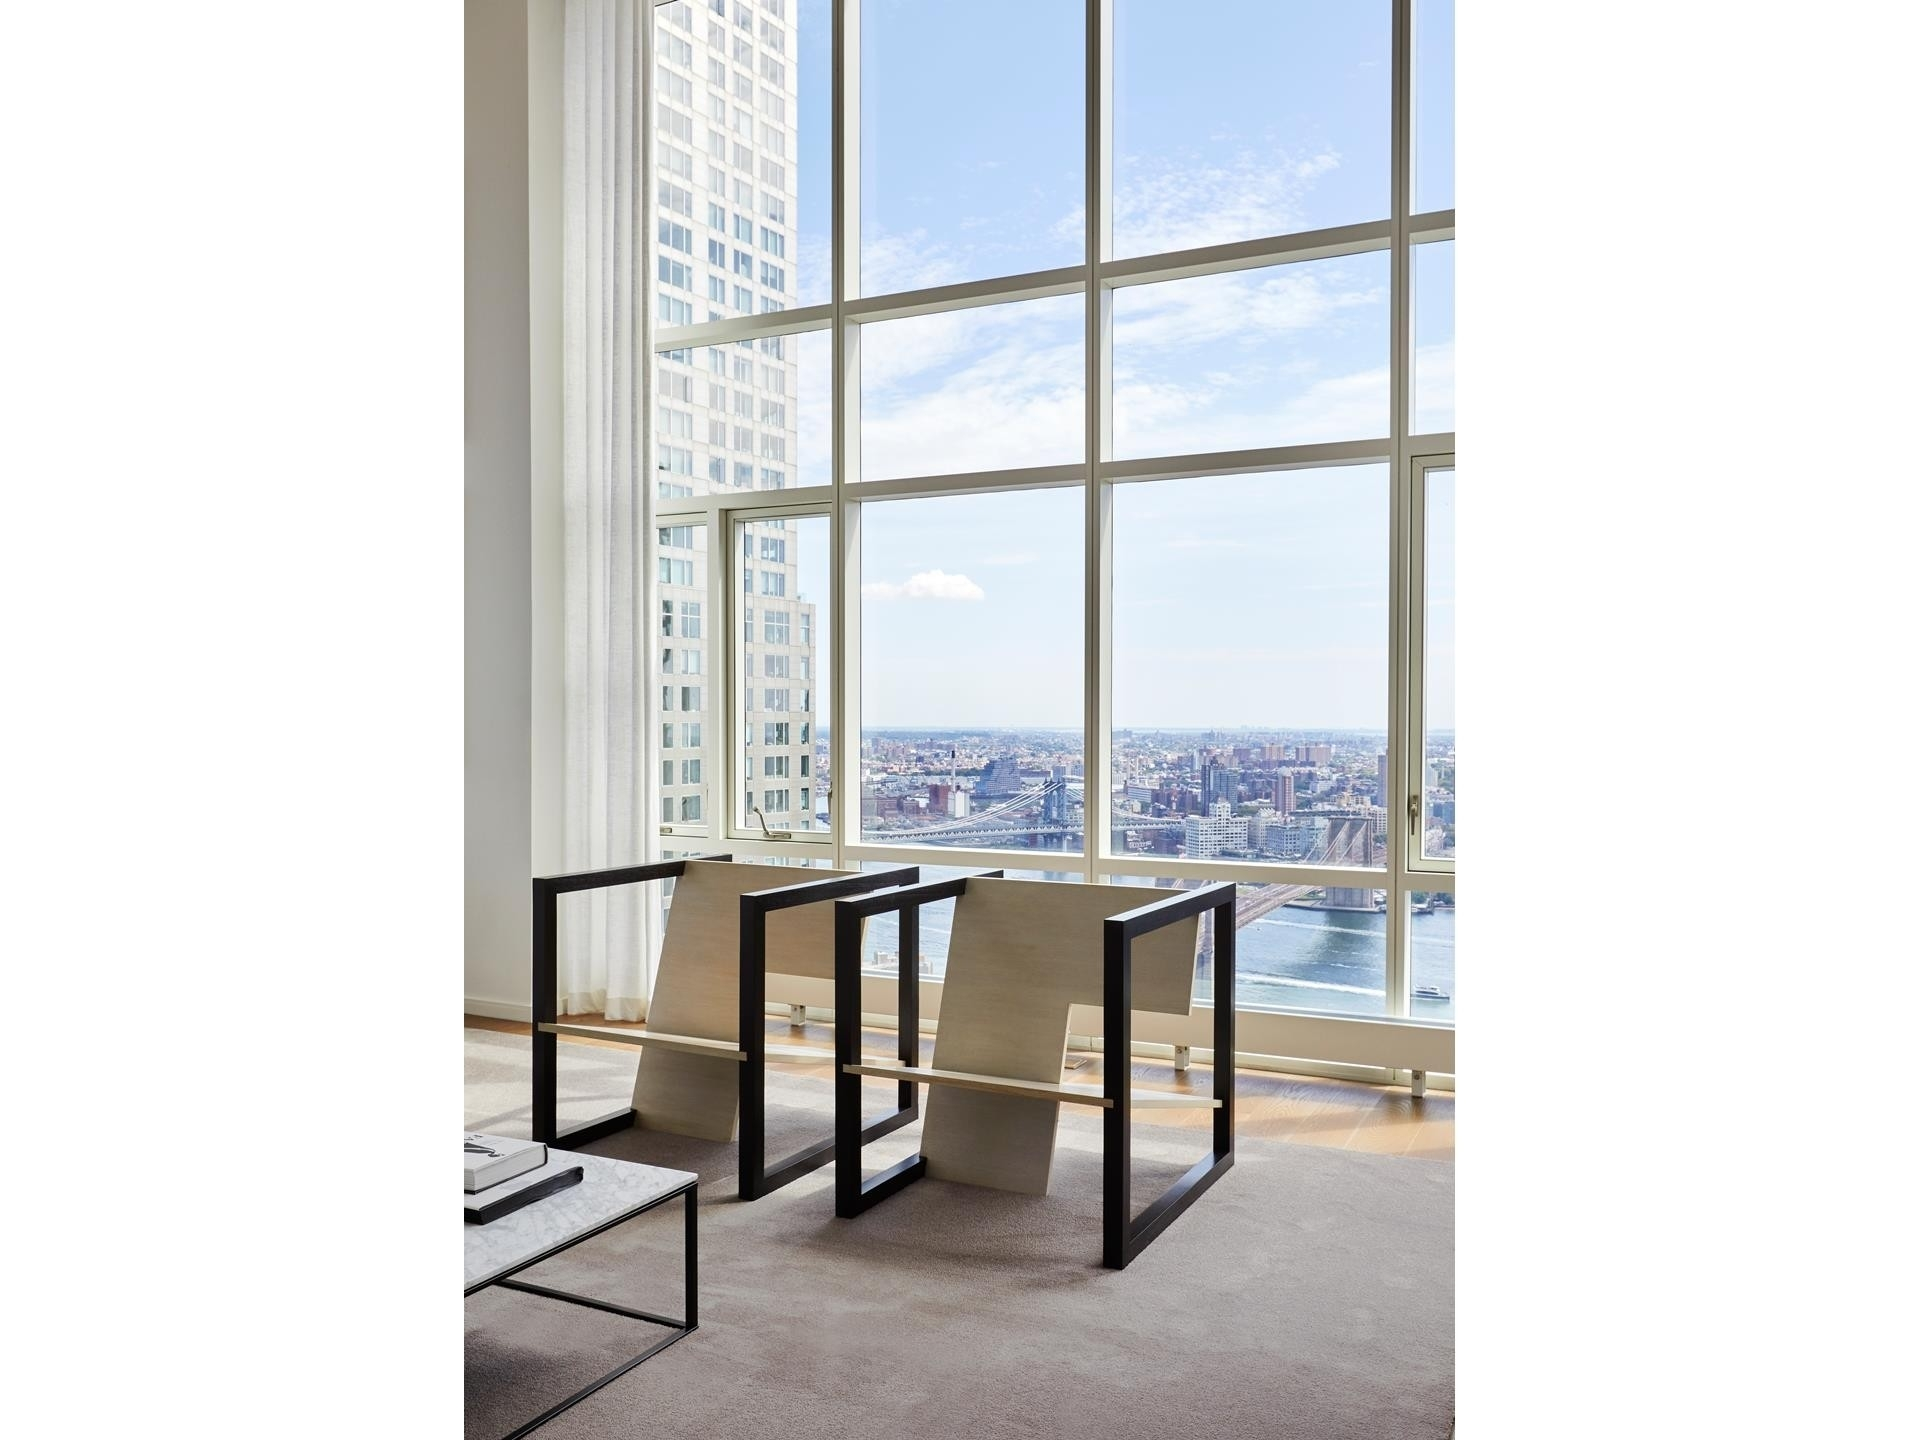 7. Condominiums for Sale at The Beekman Residences, 5 Beekman St, PH Financial District, New York, NY 10038